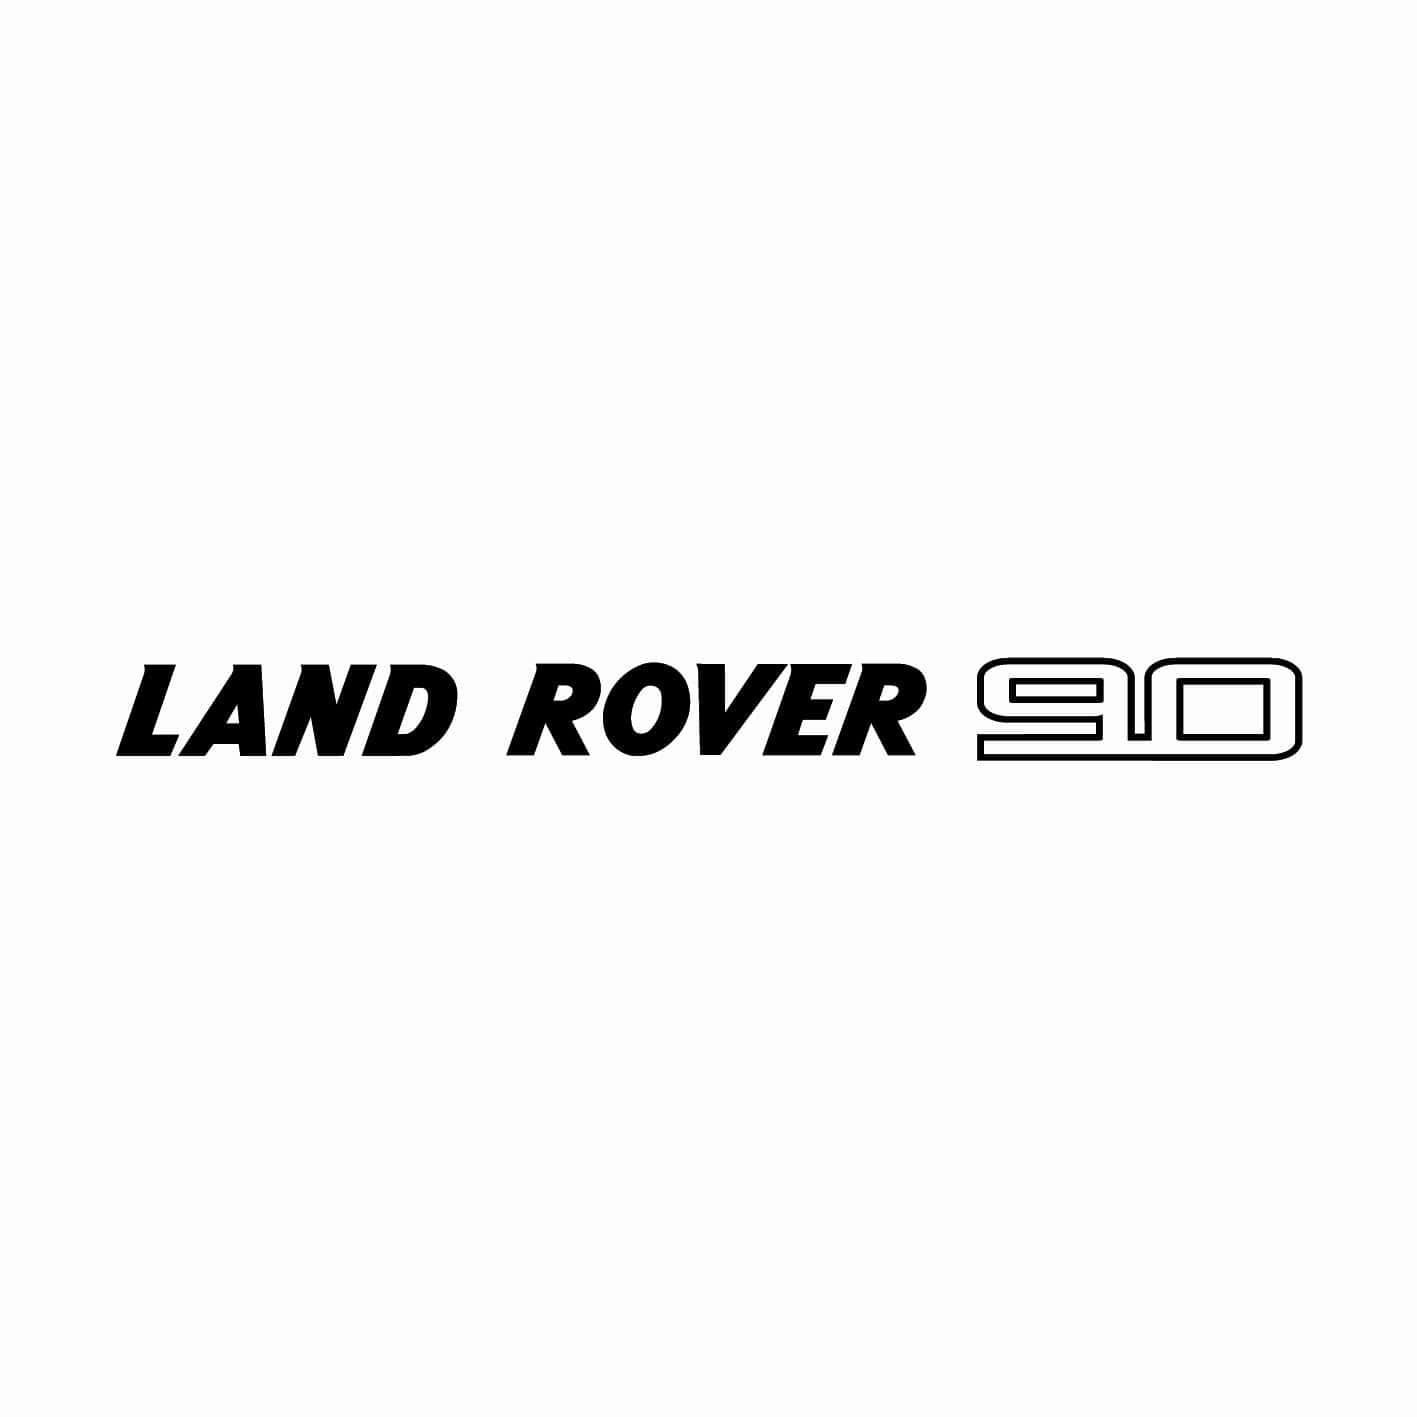 land-rover-ref8-90-discovery-stickers-sticker-autocollant-4x4-tuning-audio-4x4-tout-terrain-car-auto-moto-camion-competition-deco-rallye-racing-min